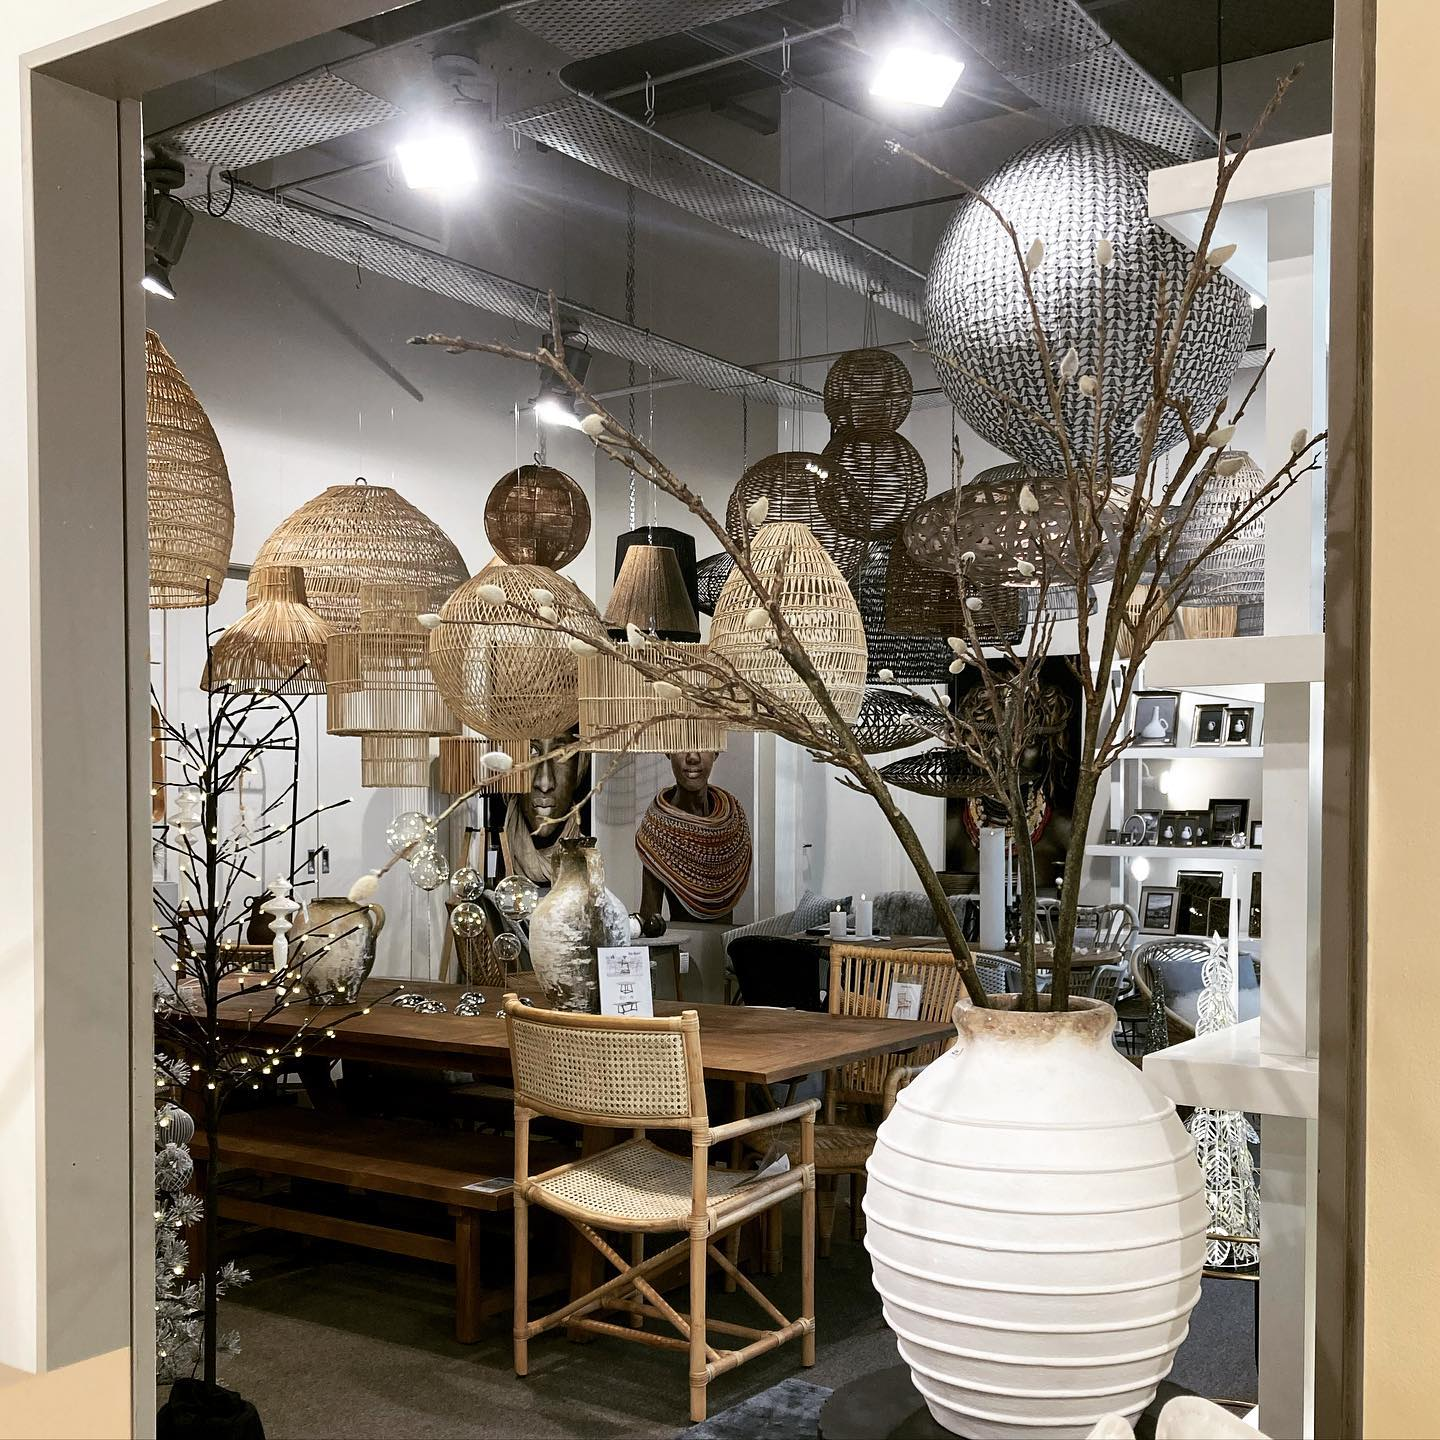 Our lighting/outdoor room - a huge range of handmade rattan lamps. So much texture and a sense of summer… . . #rattanlamps #shades #rattan #handmade #texture